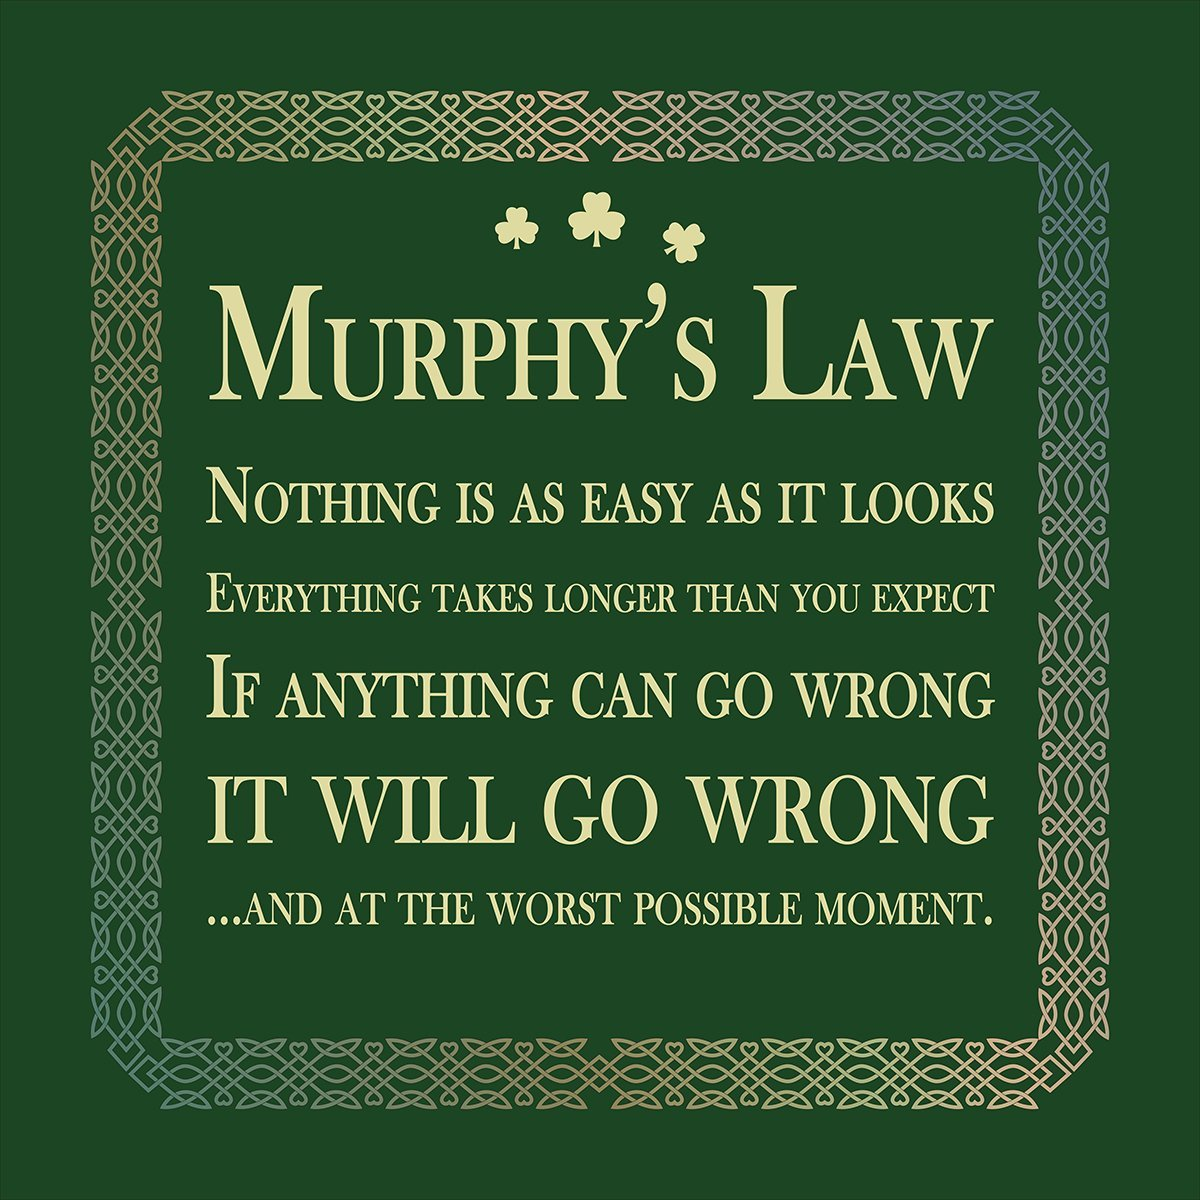 murphy's law: if anything can go wrong, it will go wrong.